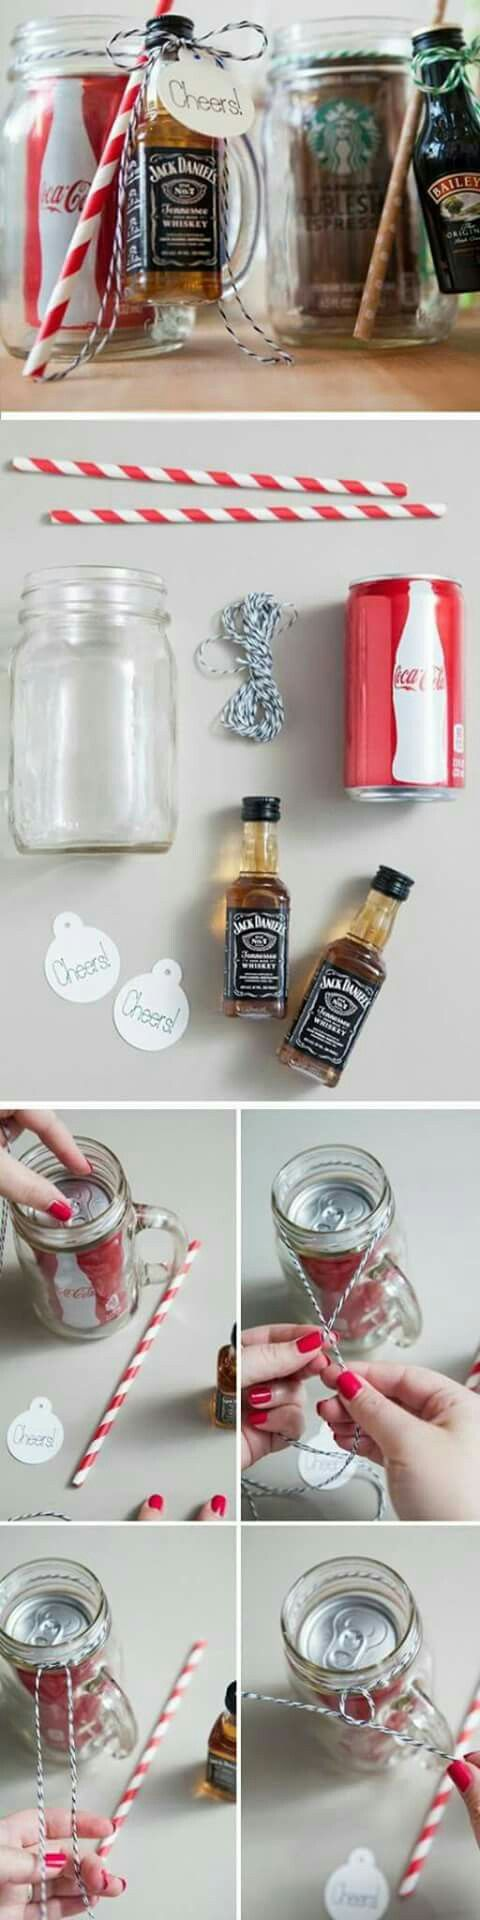 diy office gifts. Diy Office Gifts